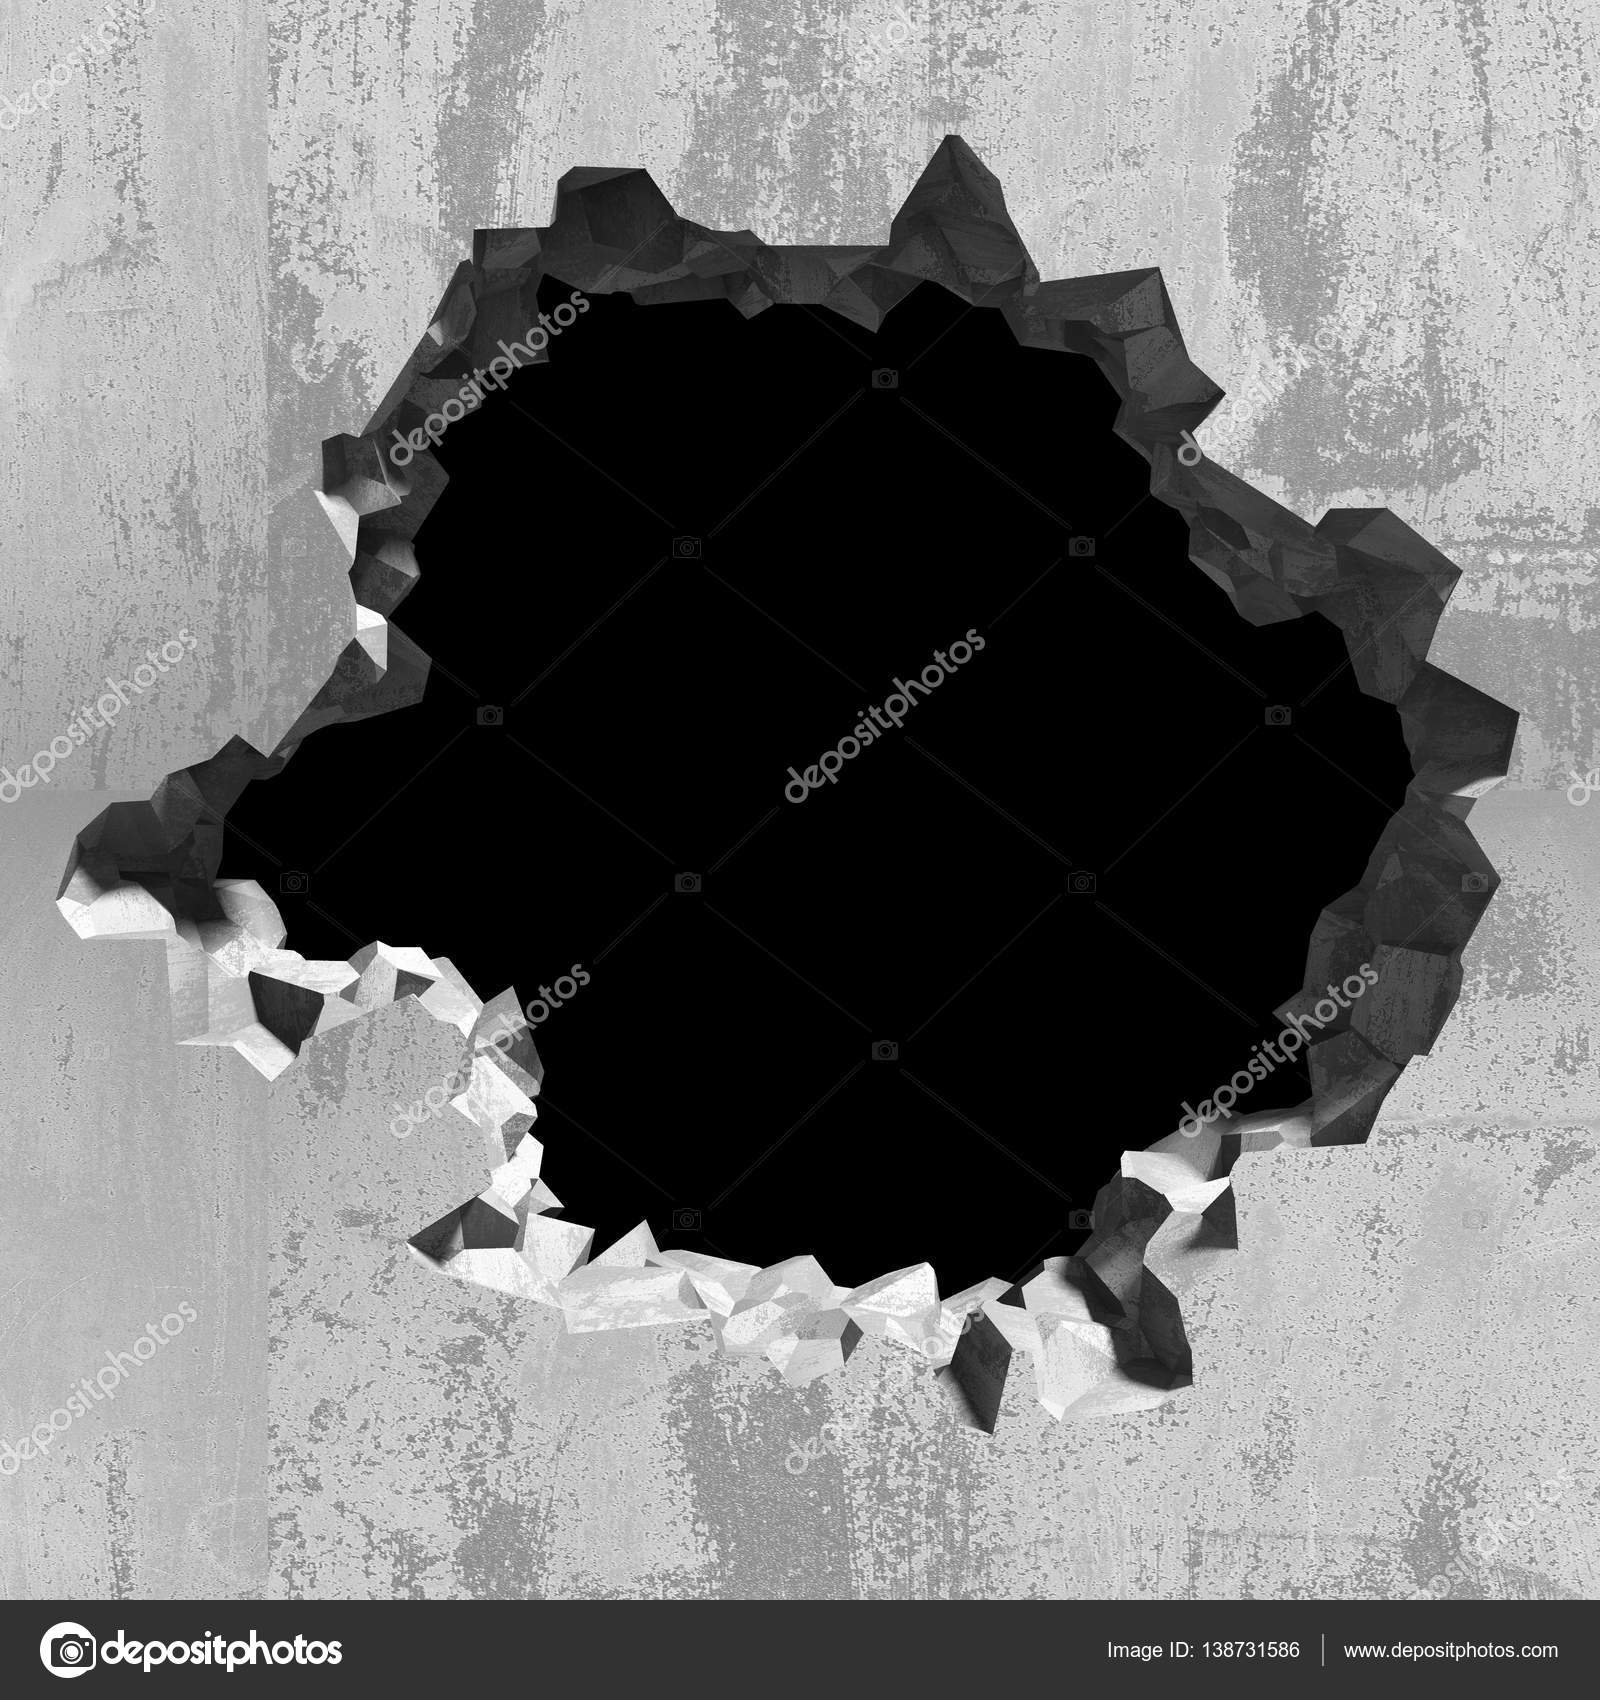 Hole In Concrete Wall : Hole in concrete cracked wall — stock photo versusstudio